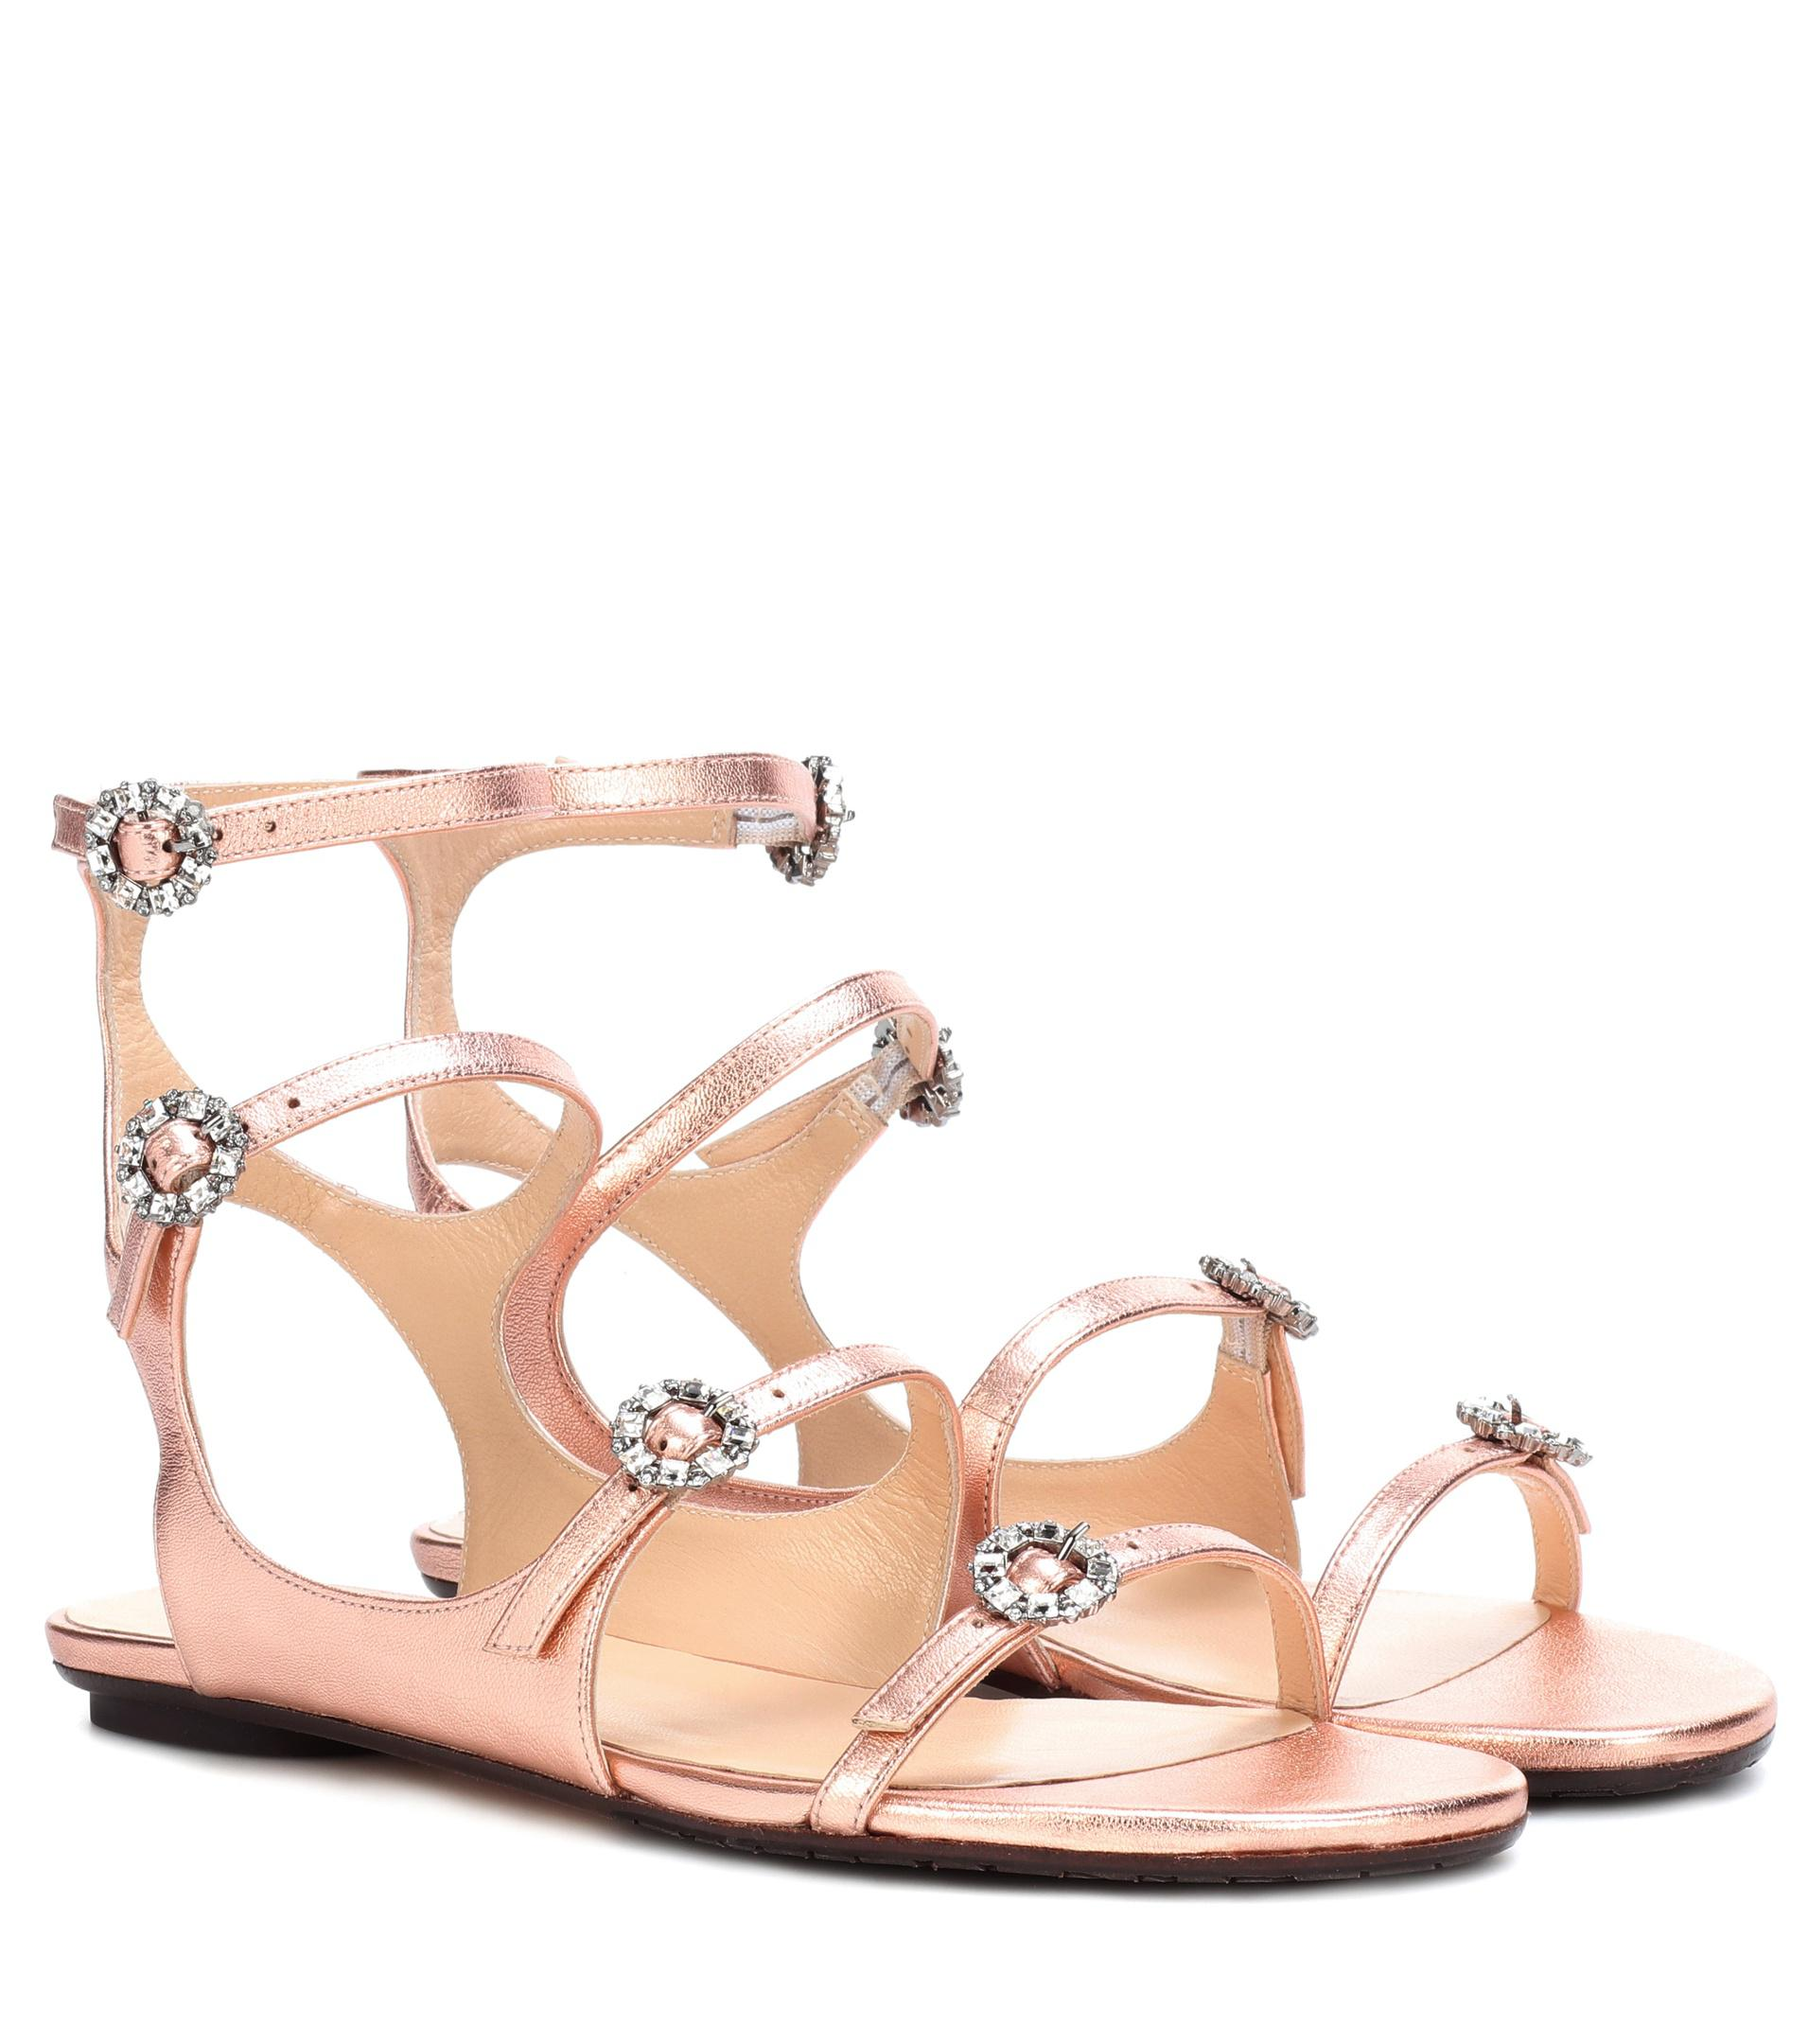 Jimmy choo Women's Naia Embellished Leather Flat Sandals ZbCCsihrm